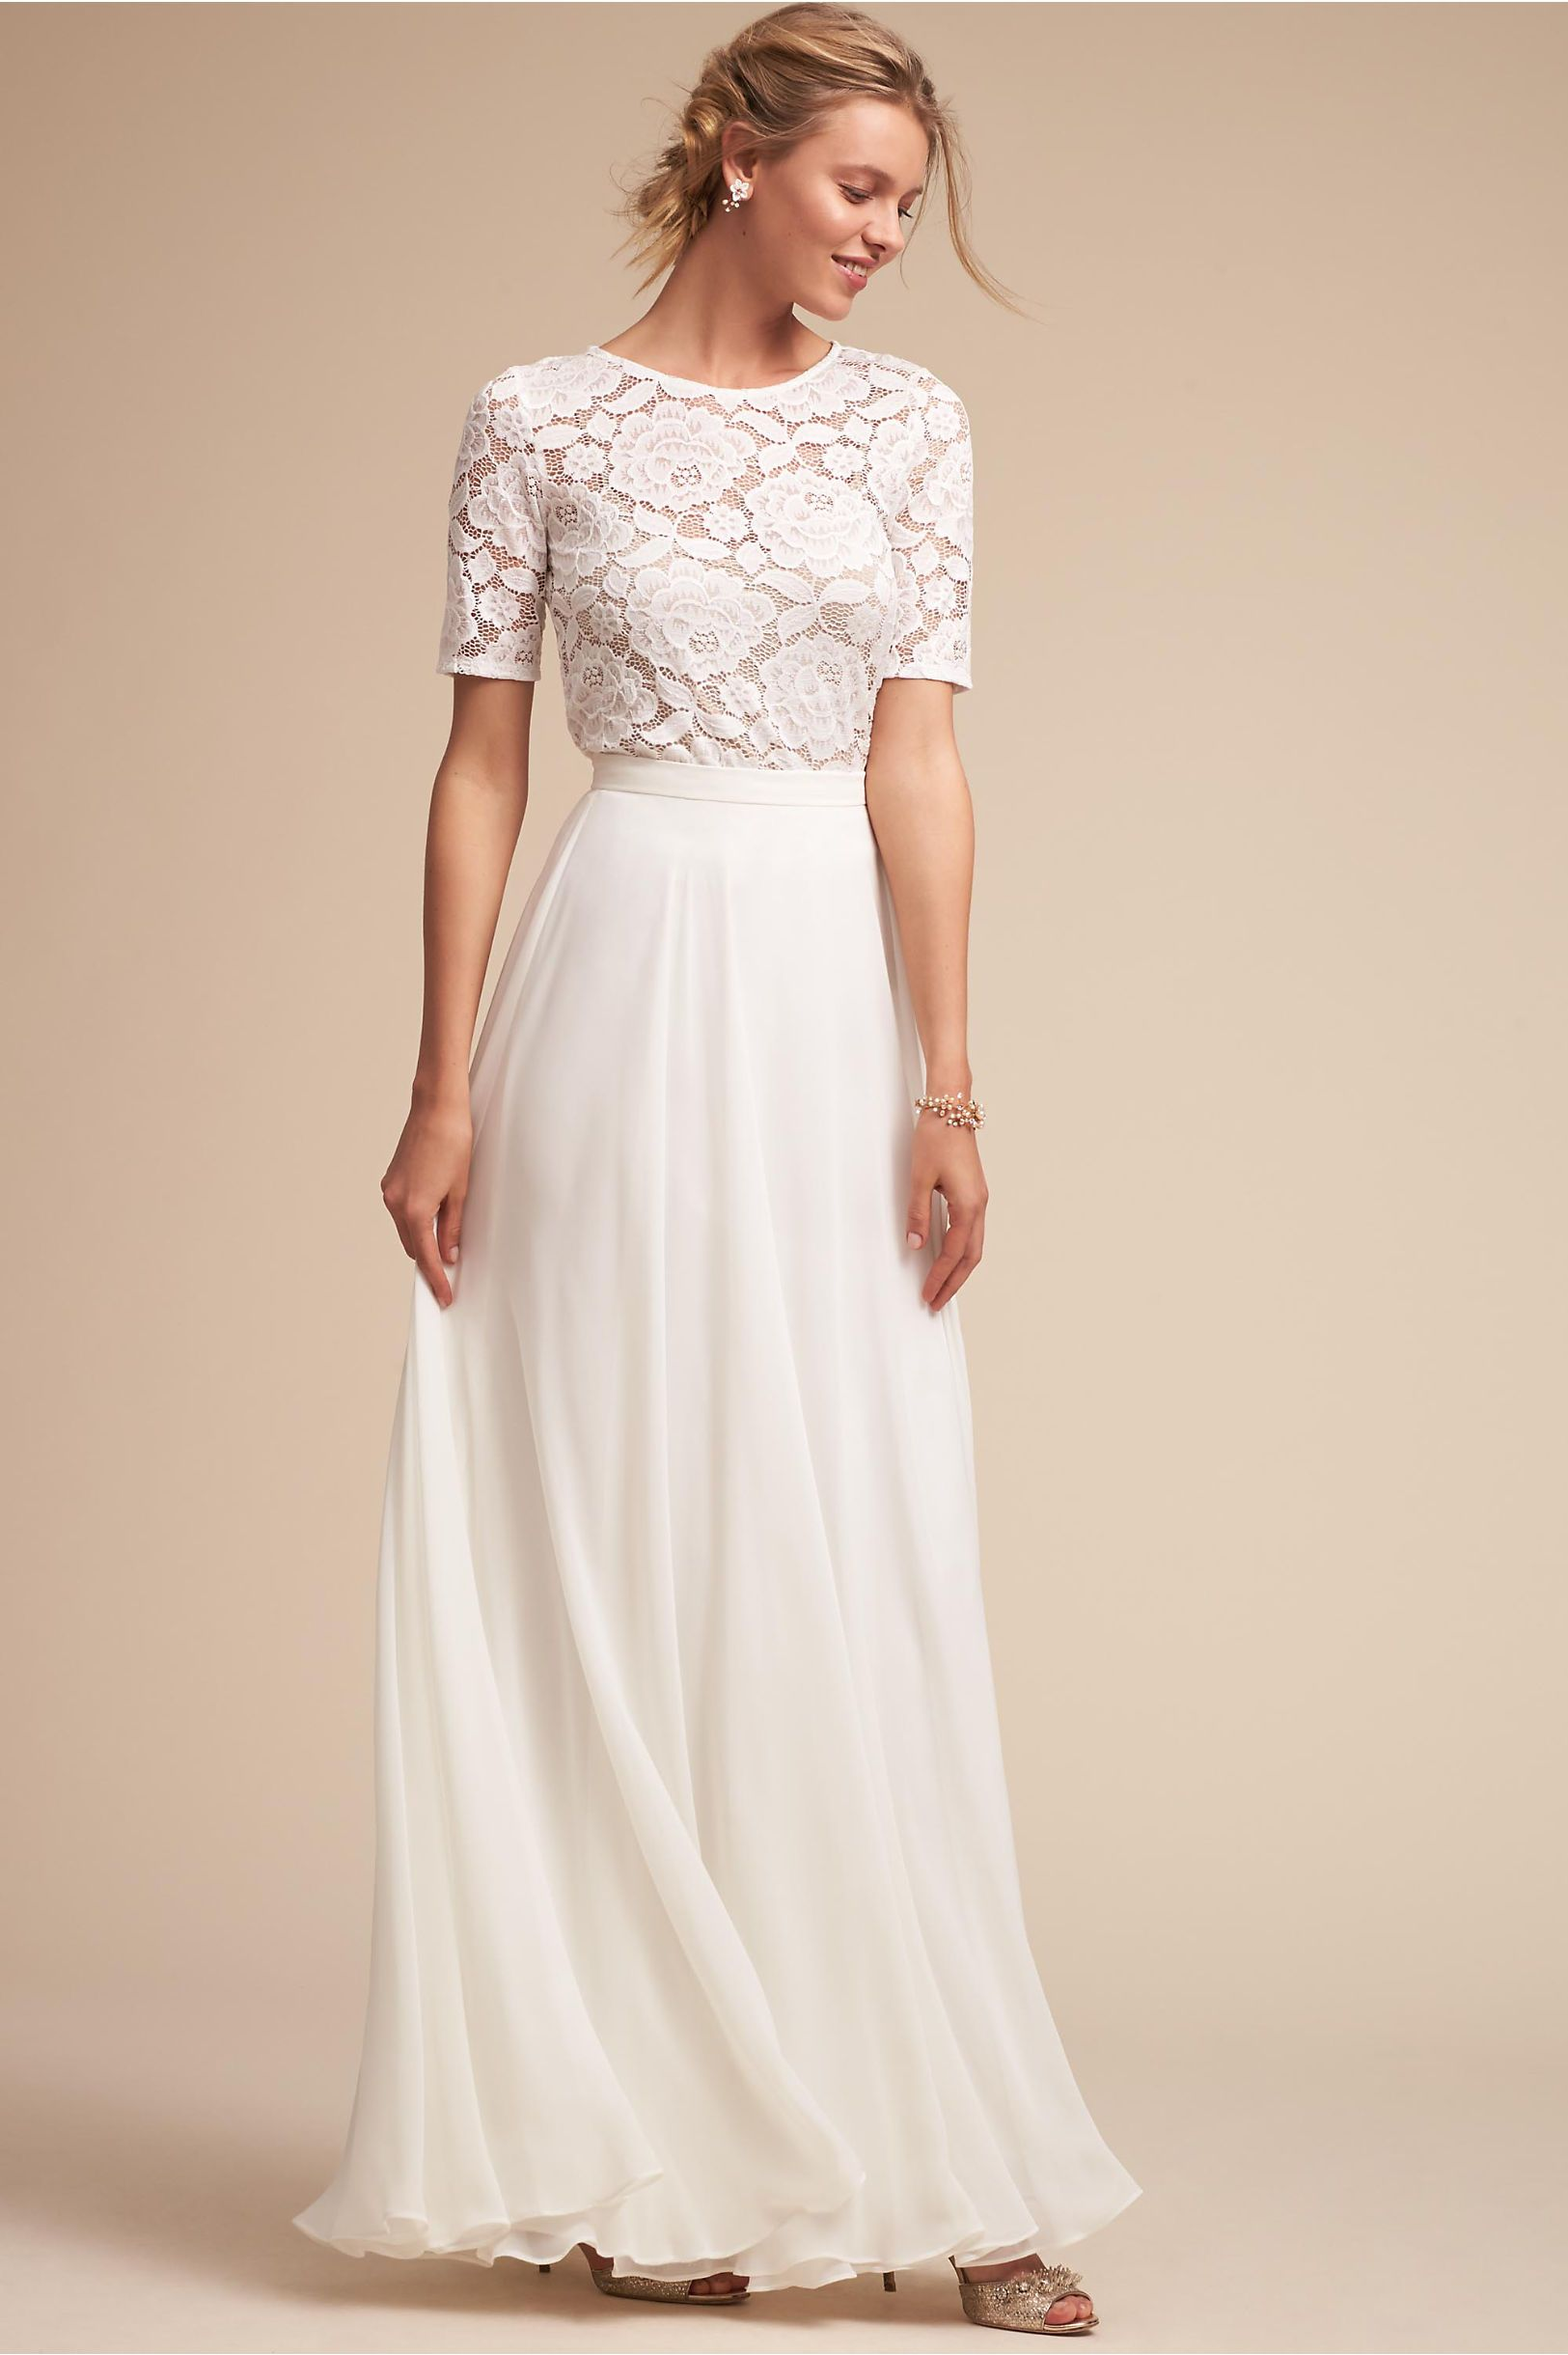 Little white wedding dress  BHLDN Jive Top u Hampton Skirt in Bridal Party  BHLDN  DRESSES